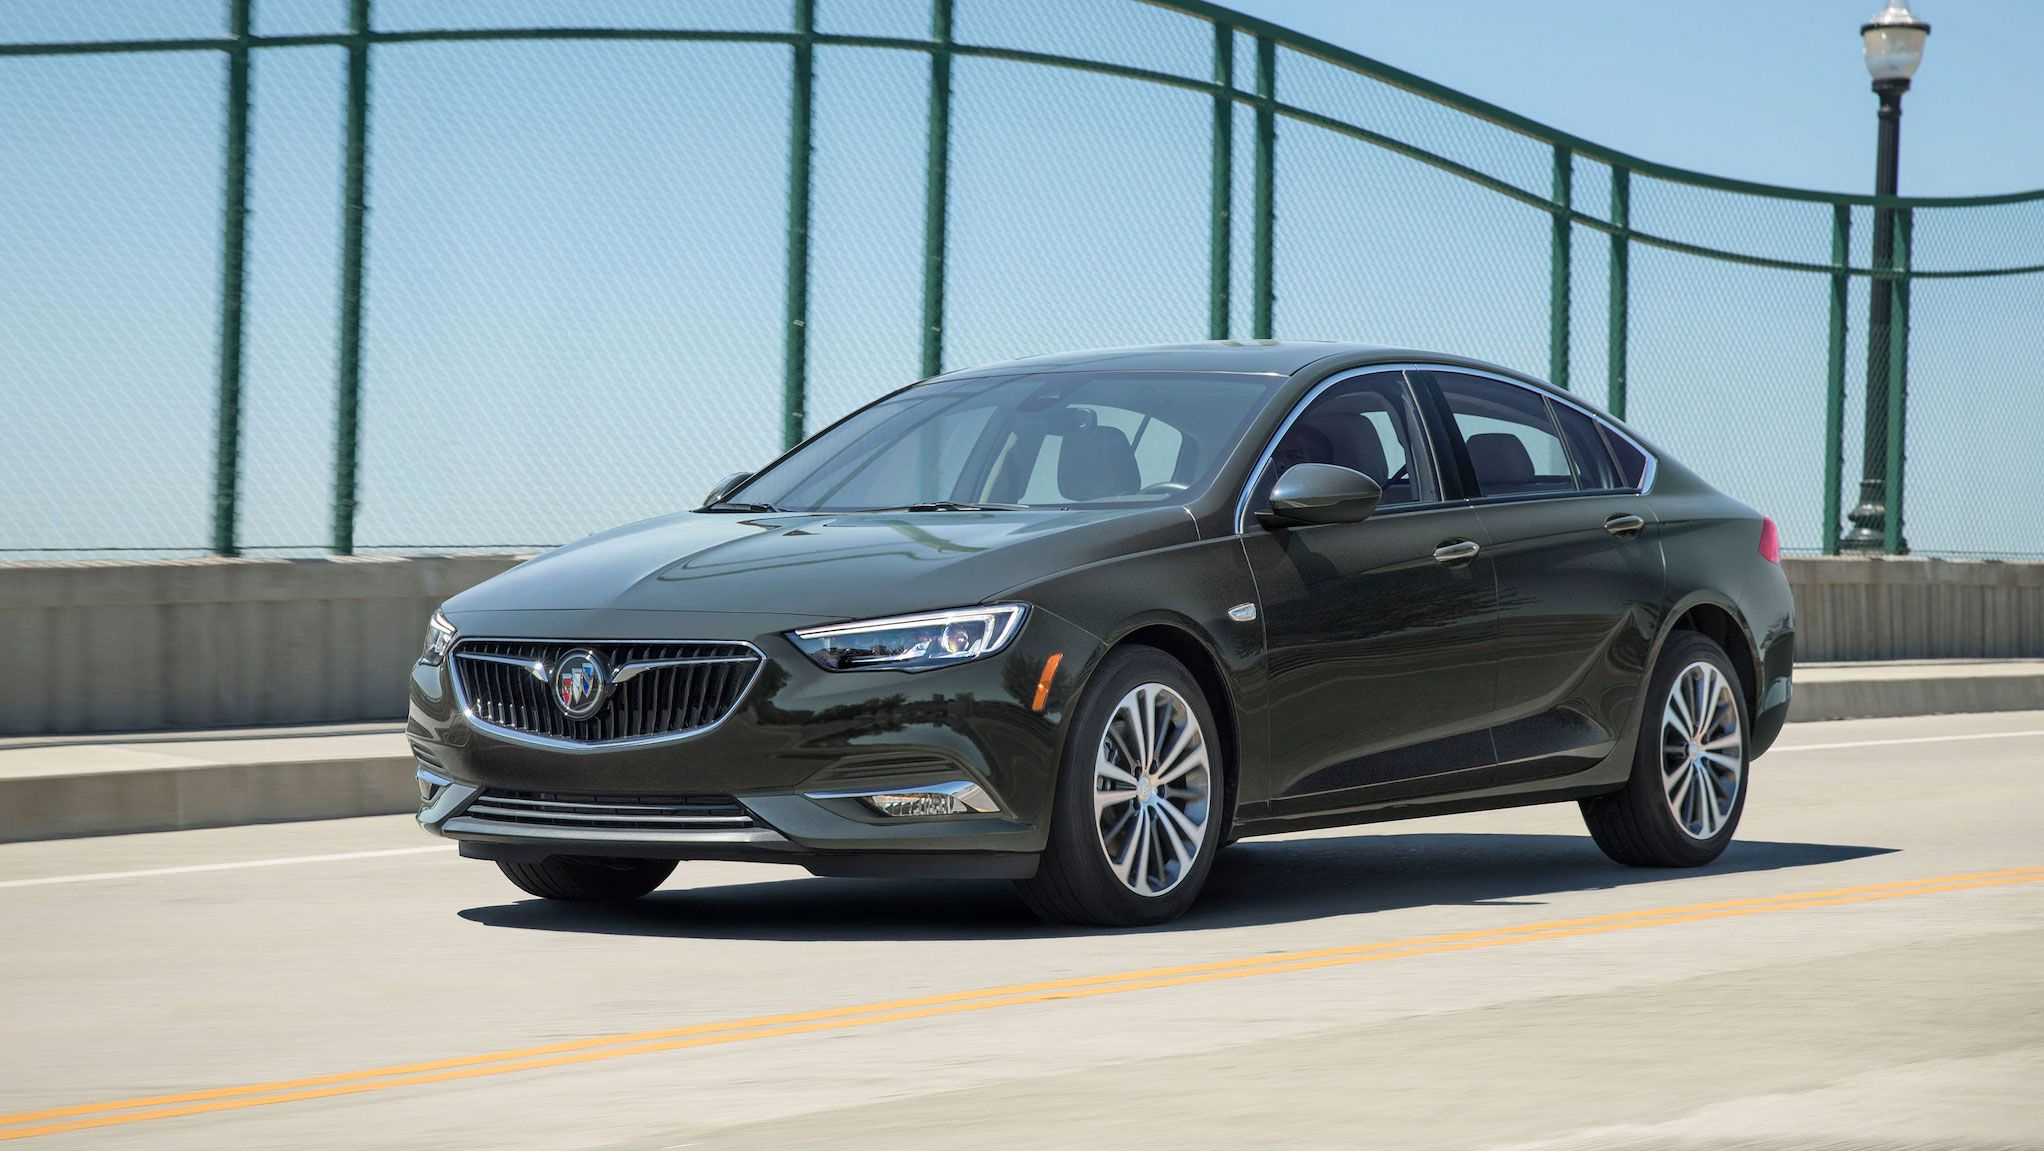 2020 Buick Regal Sportback Review, Pricing, And Specs 2021 Buick Regal Msrp, Models, Manual